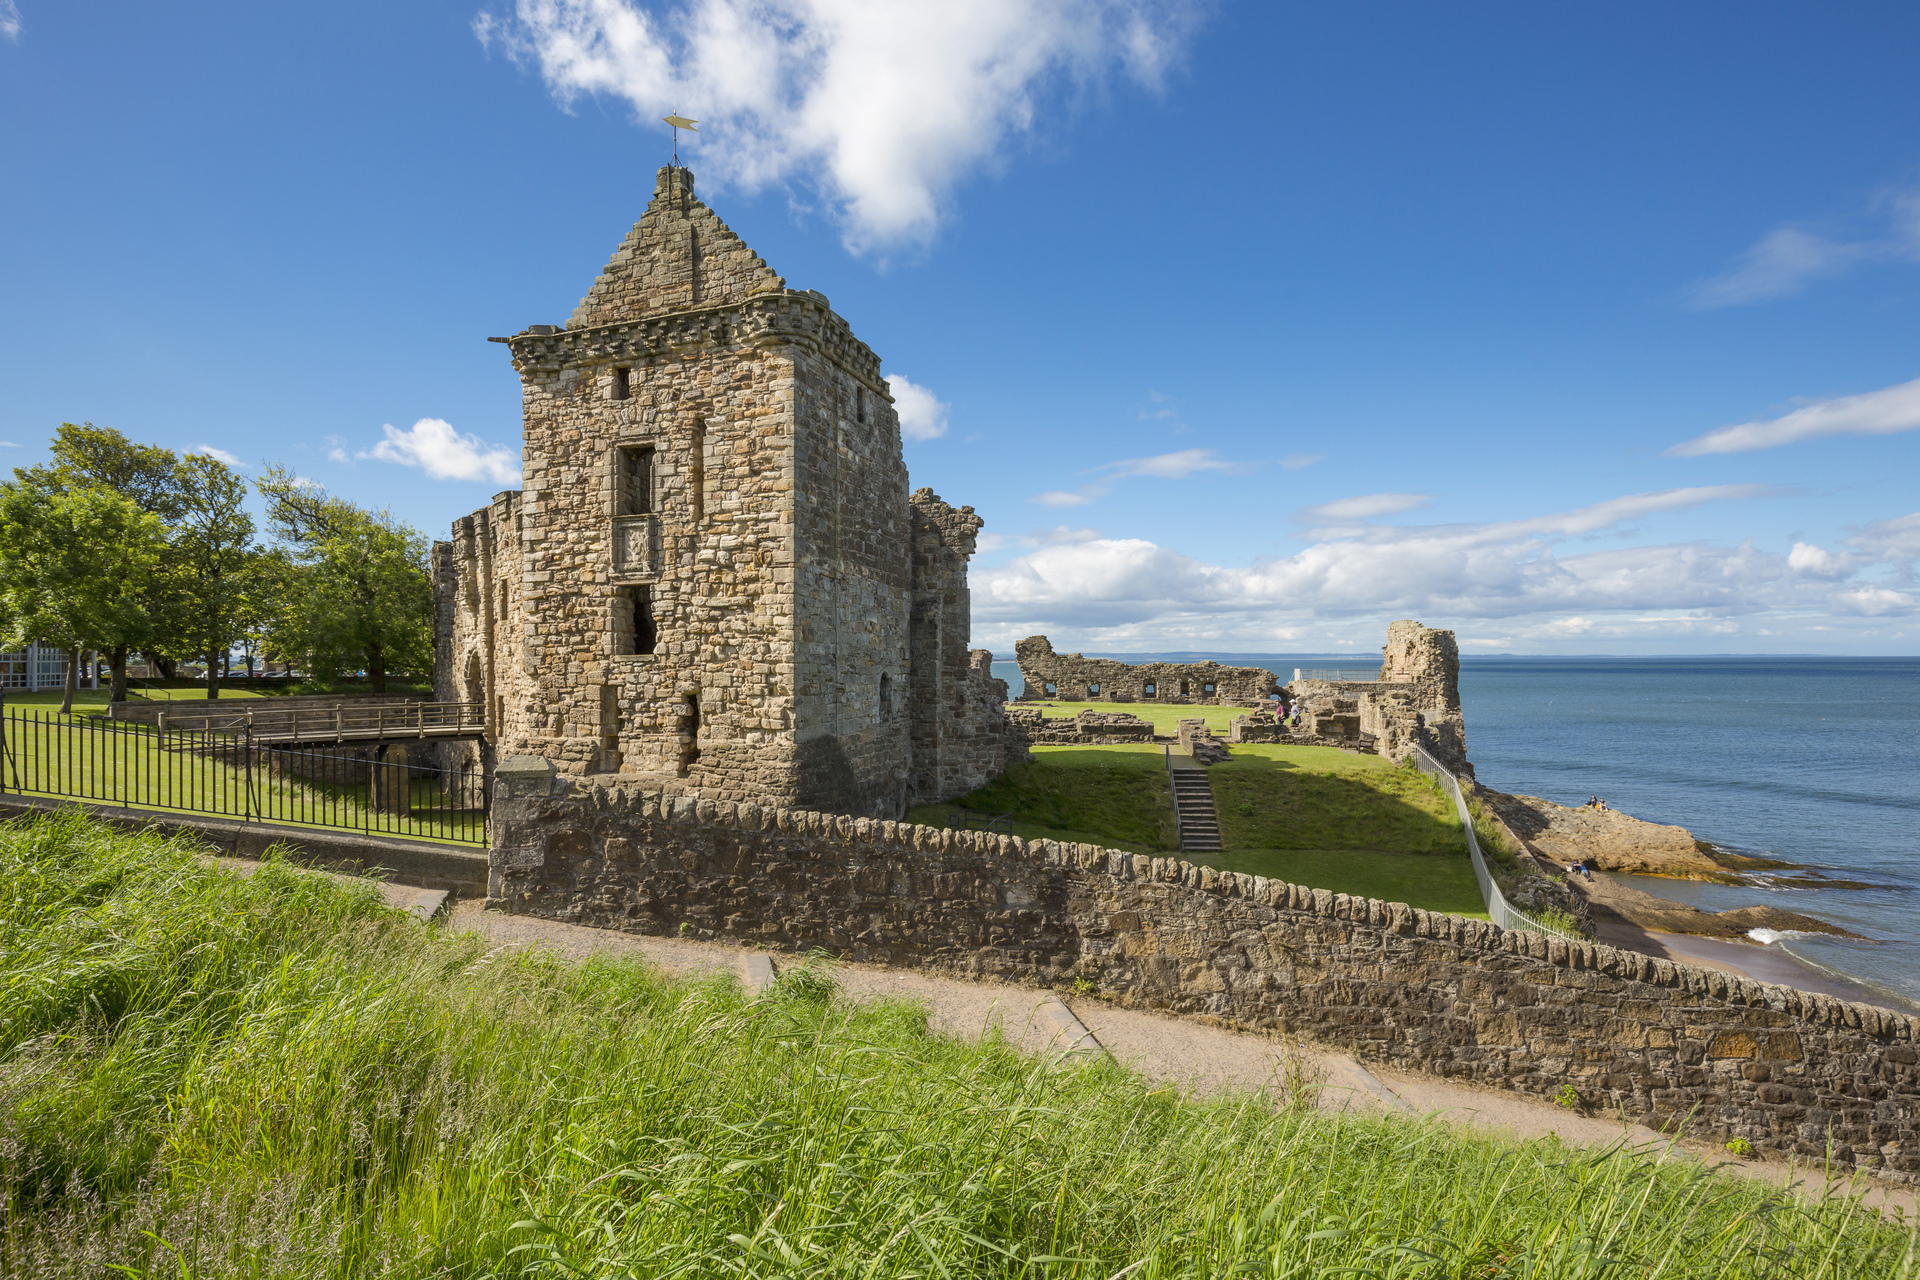 St Andrew's Castle in the Royal Burgh of St Andrews. The castle sits on a rocky promontory overlooking a small beach called Castle Sands.